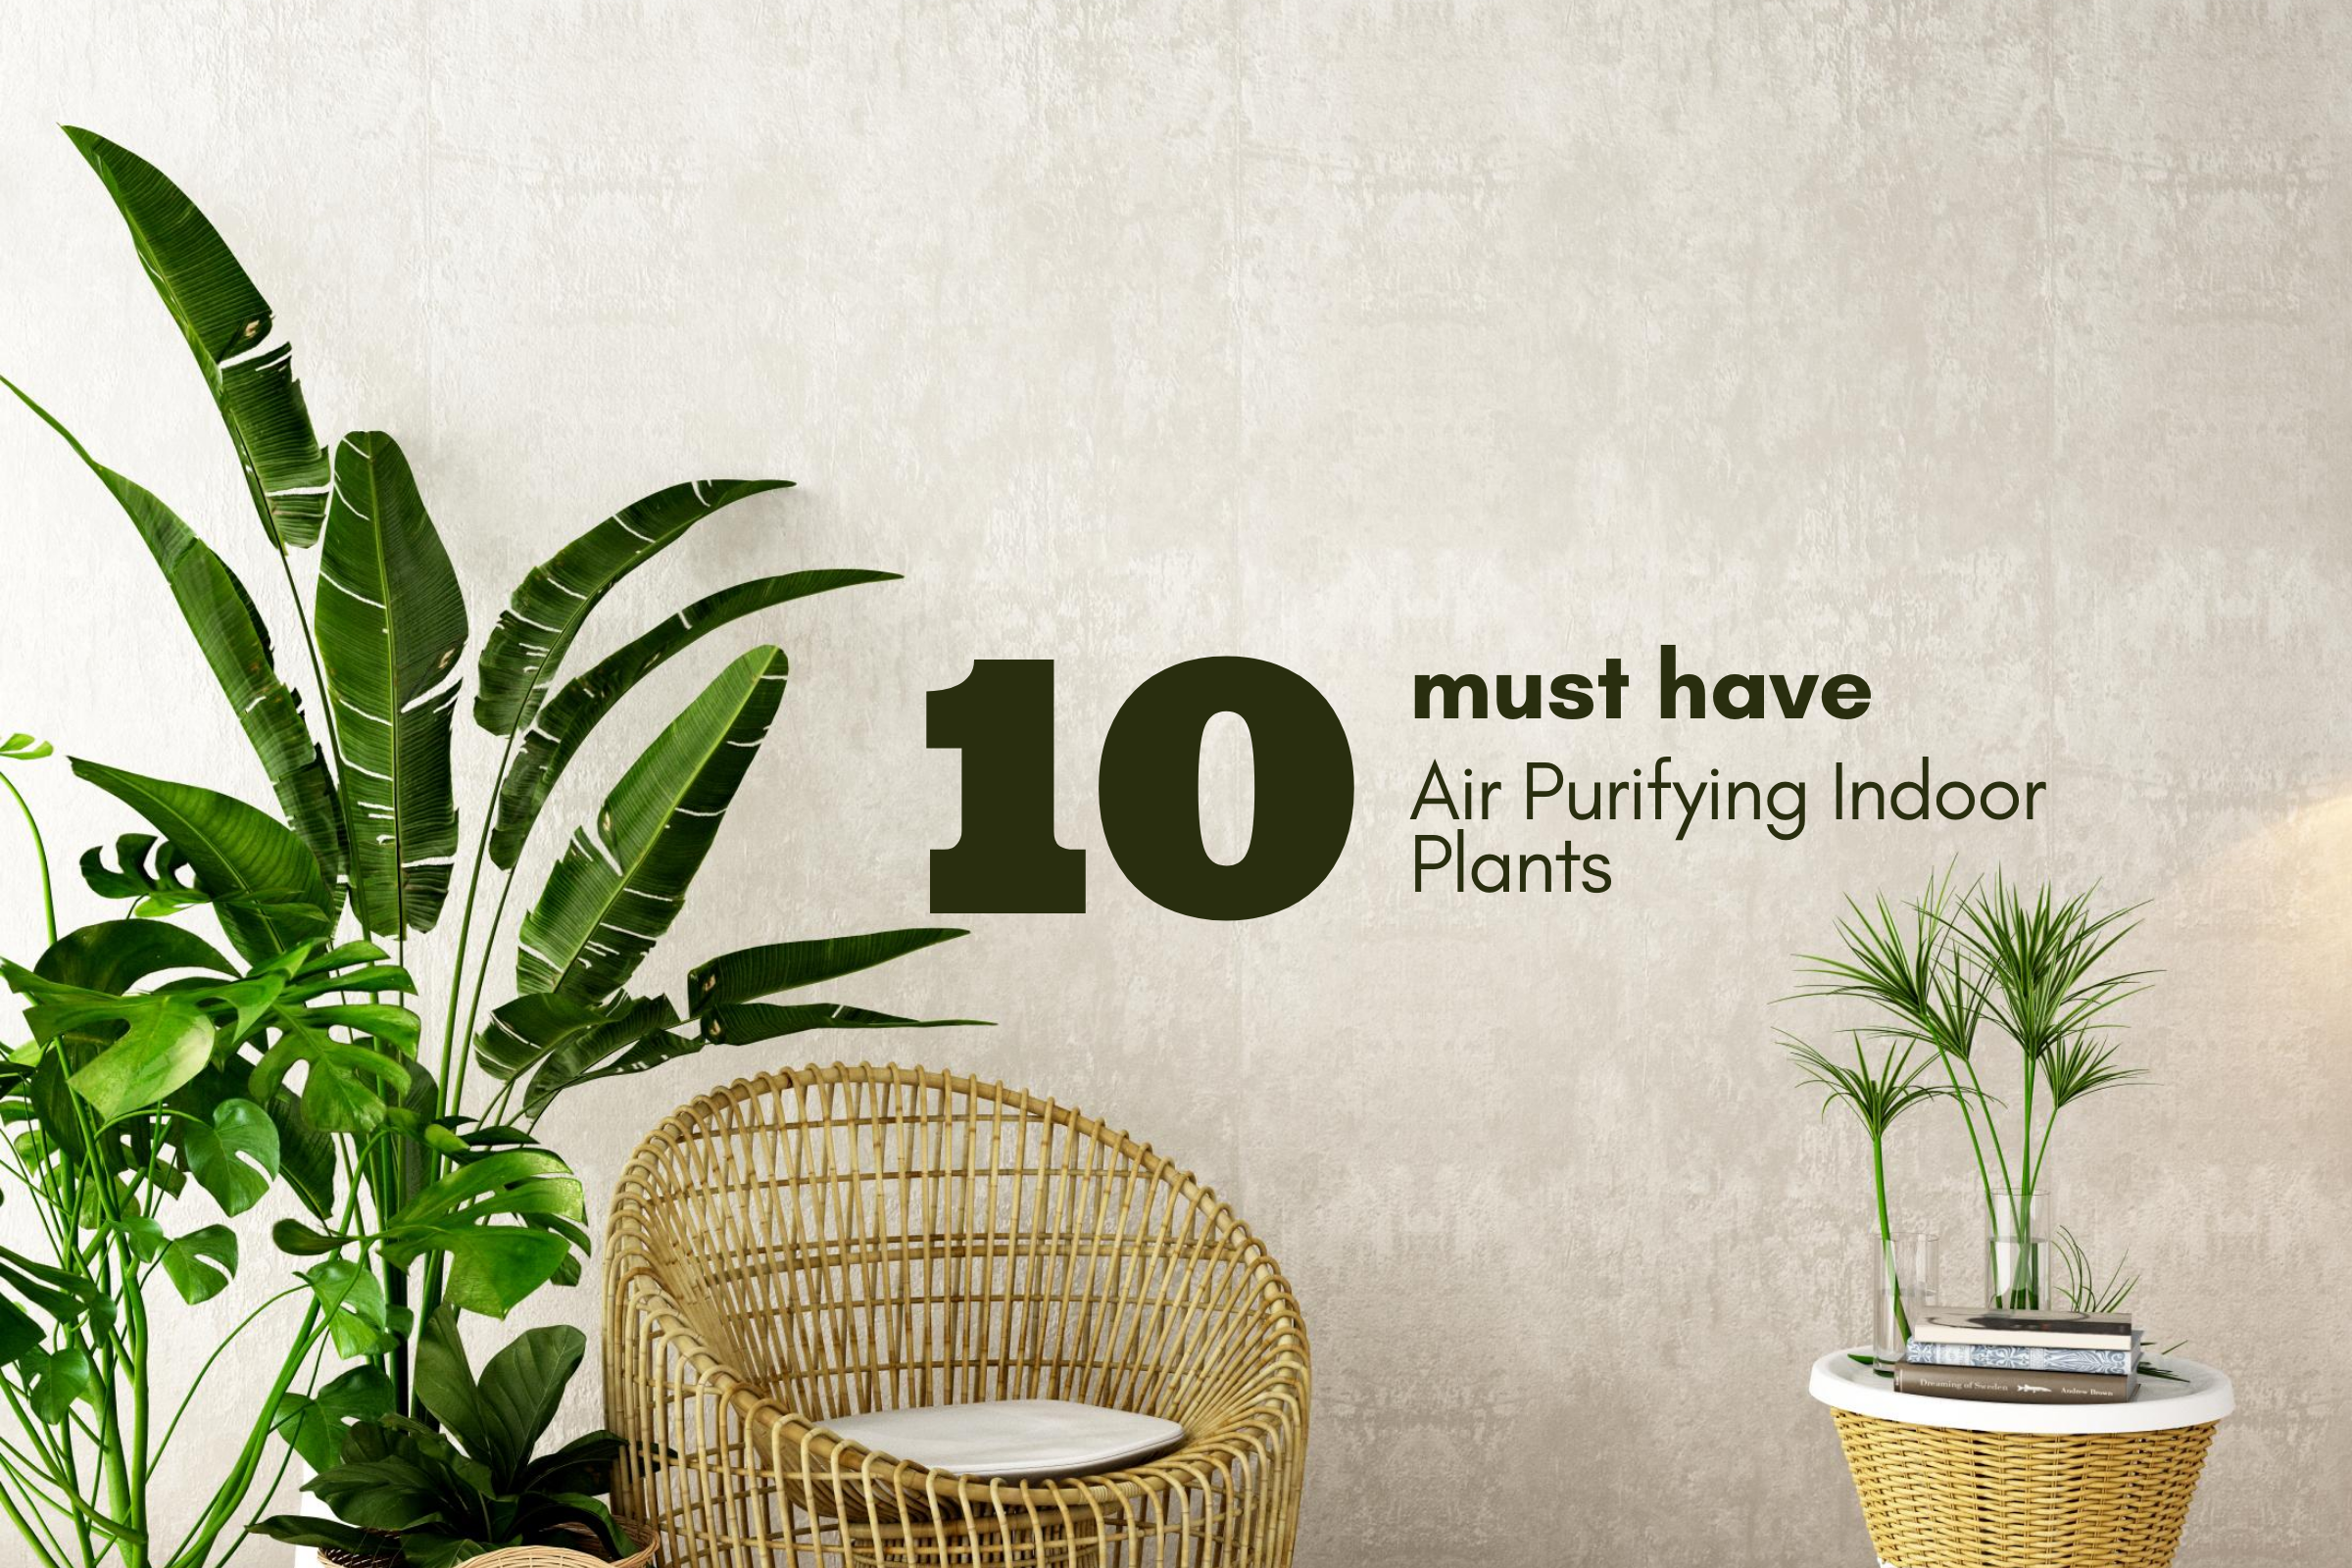 10 Must Have Air Purifying Indoor Plants Recommended by NASA